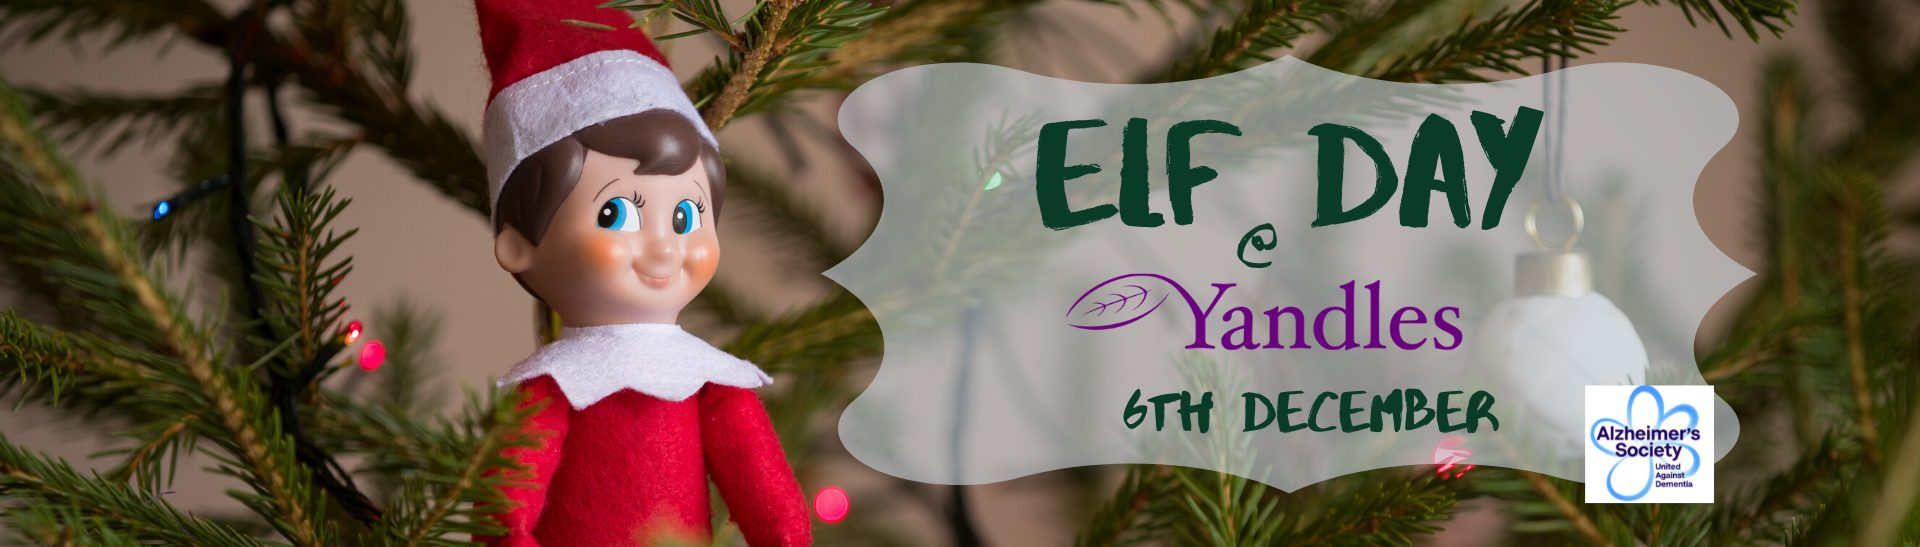 Elf Day for Alzheimers Society